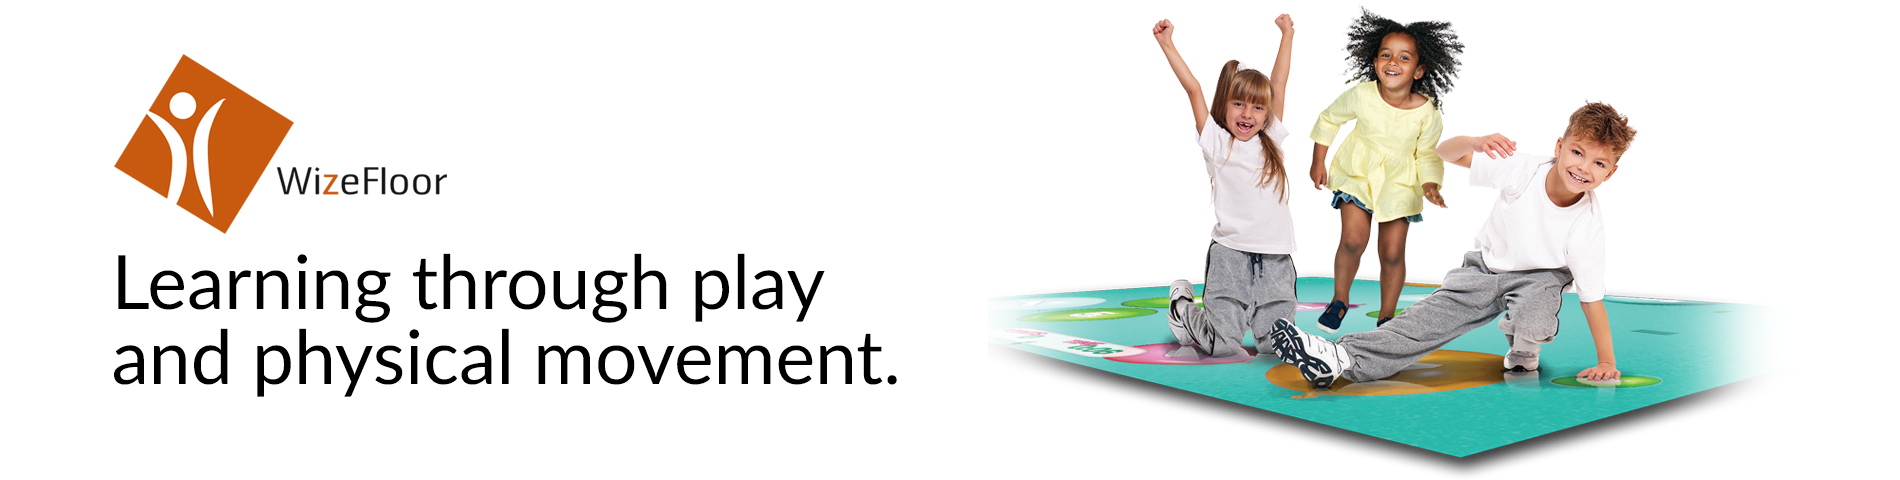 WizeFloor | Learning through play and physical movement.